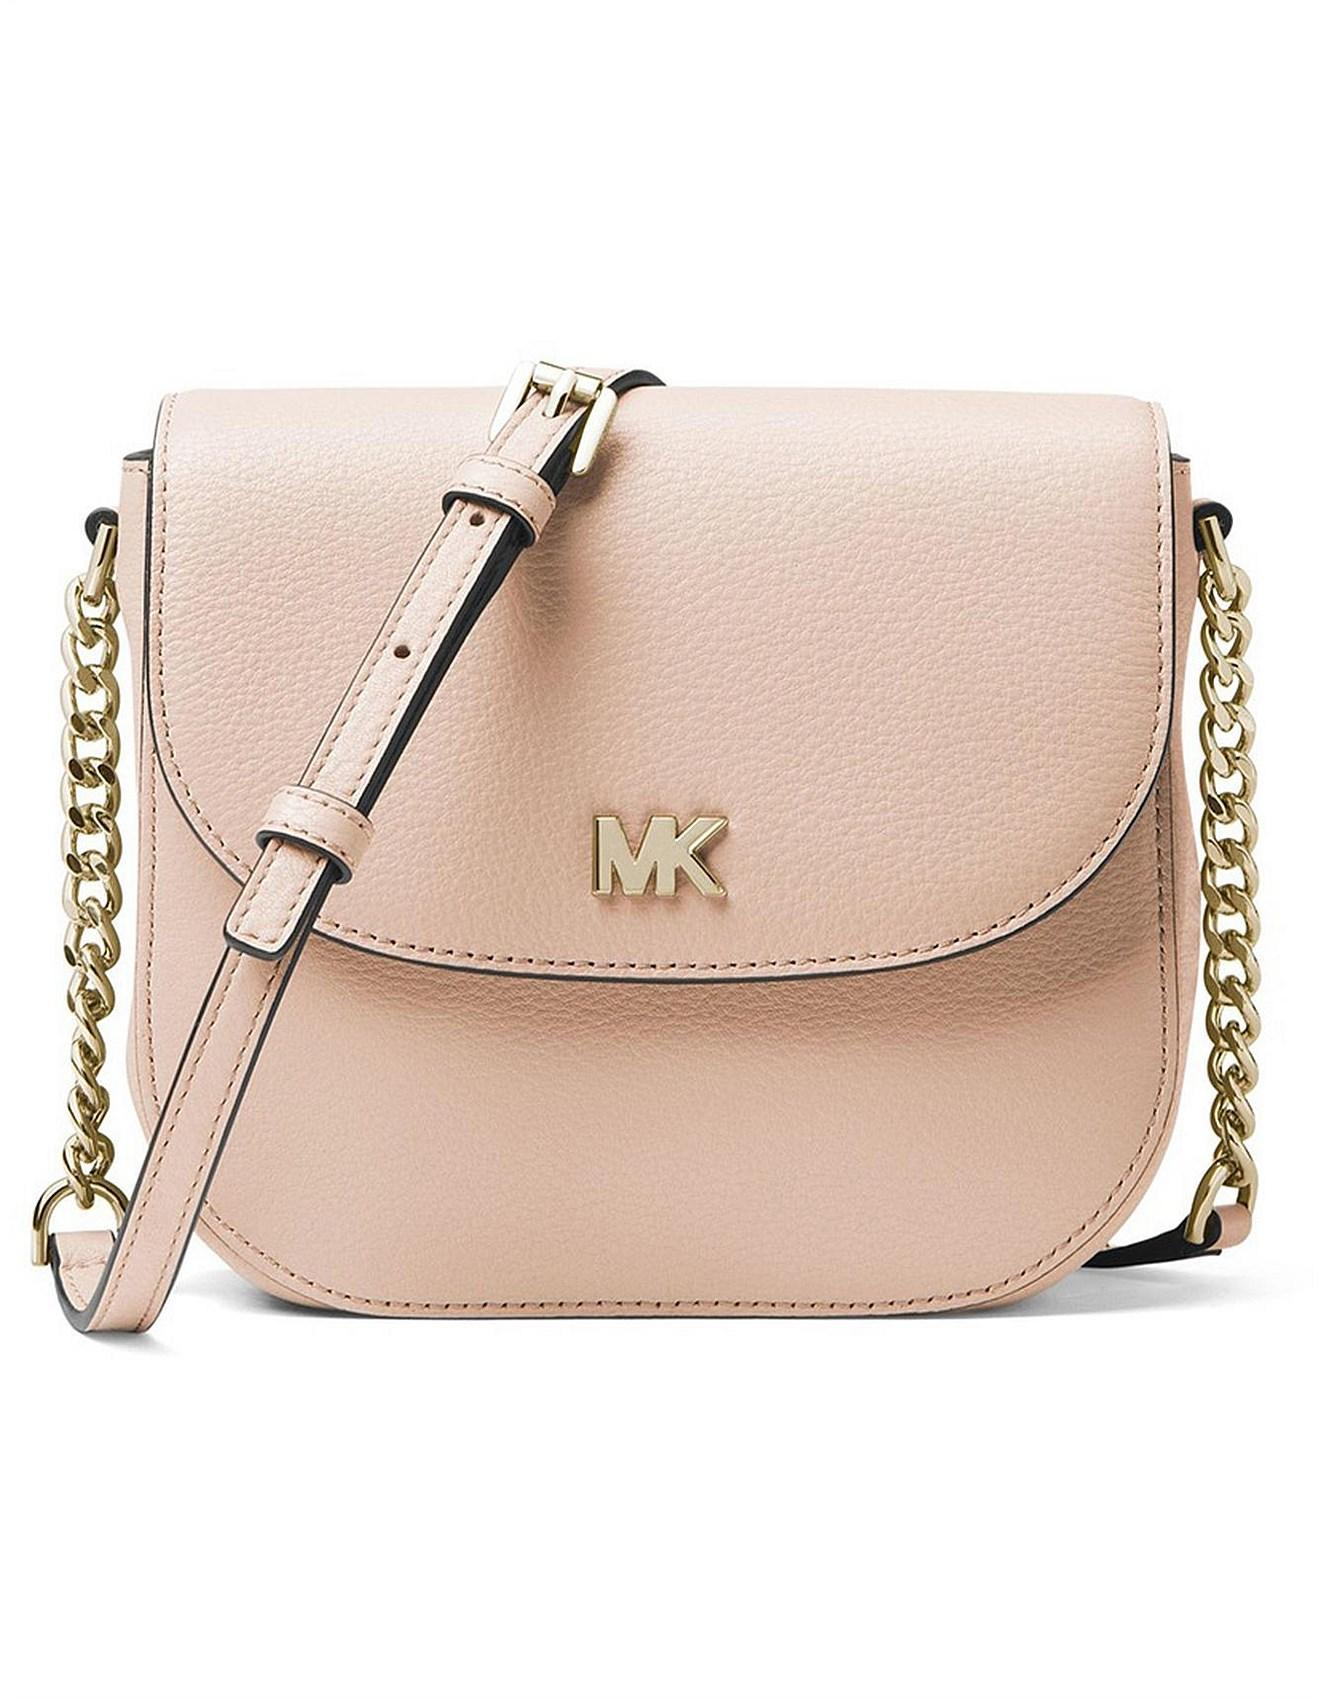 fcacd975eb2b Michael Kors Mott Pebbled Leather Dome Crossbody in Pink - Lyst